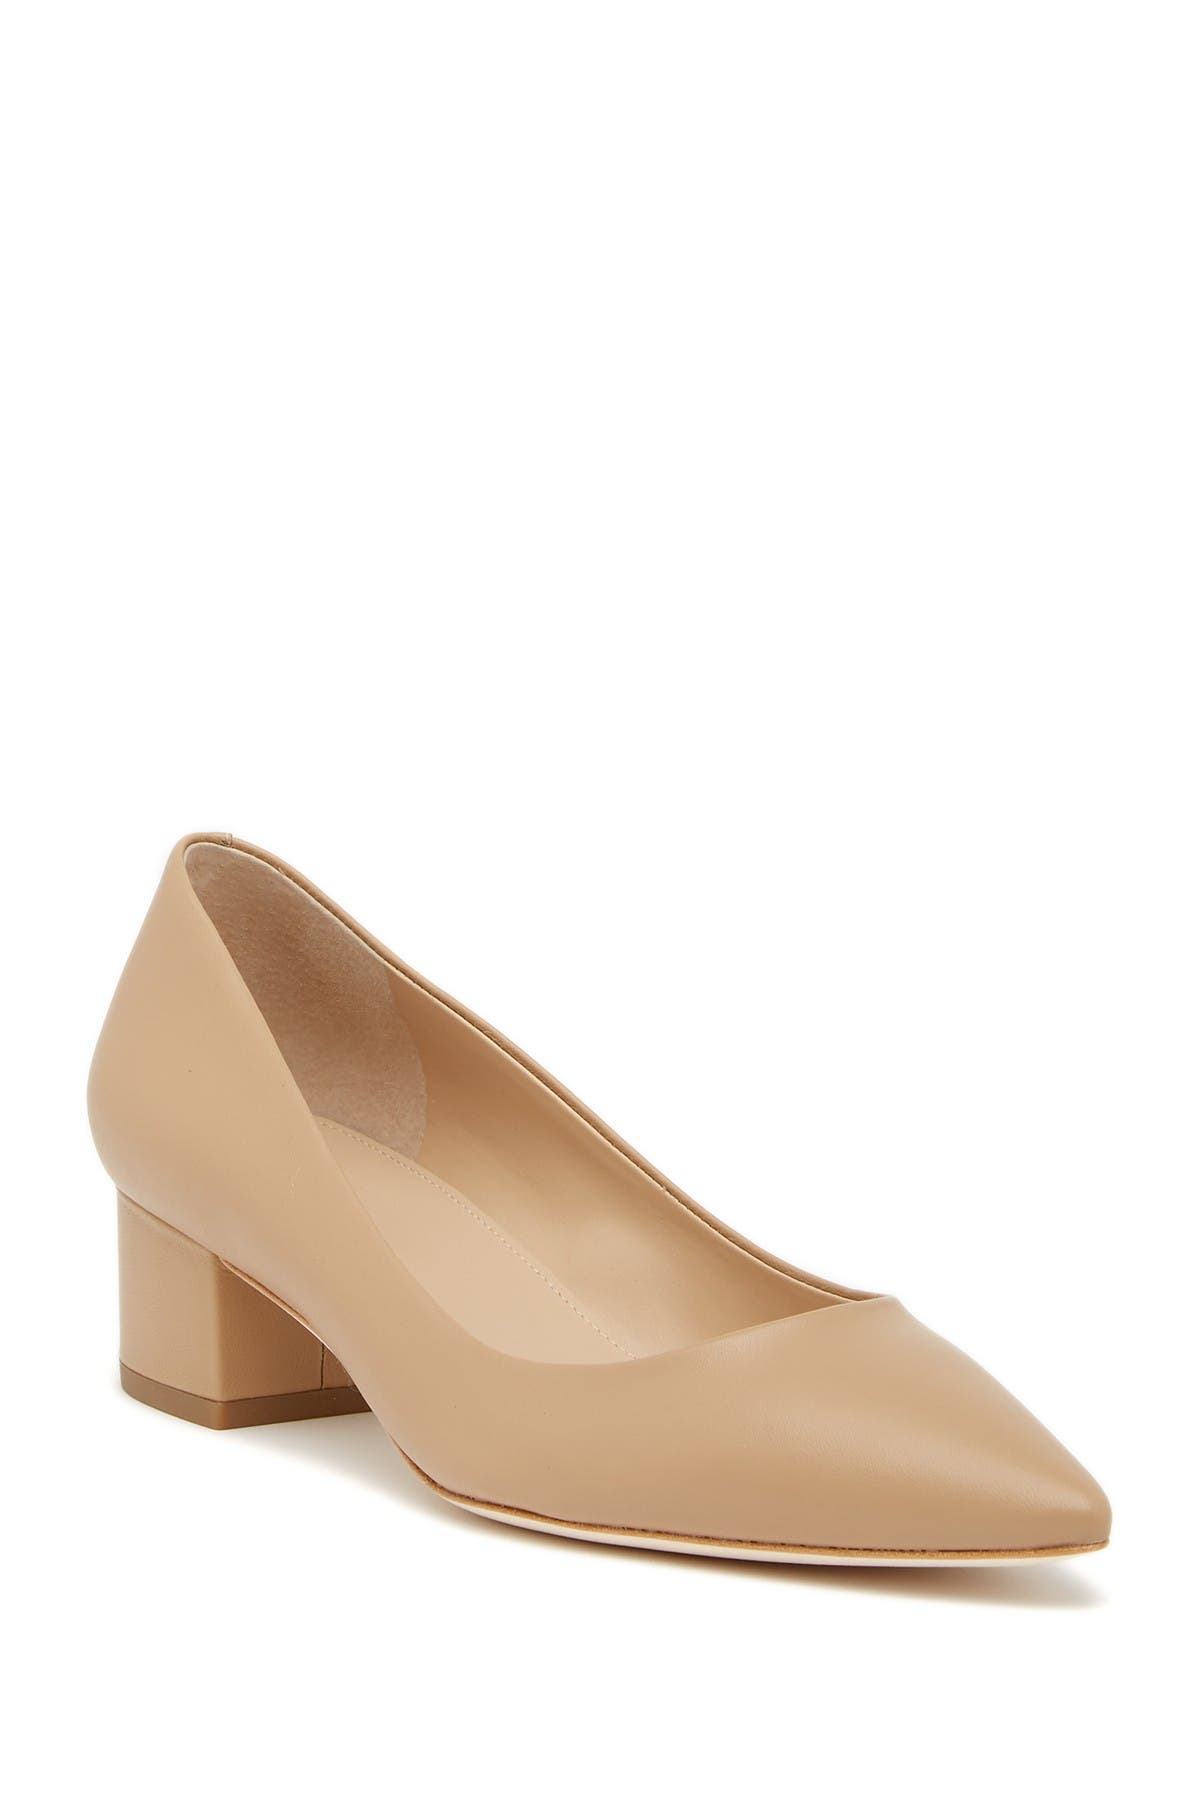 Image of Via Spiga Guervie Leather Block Heel Pump